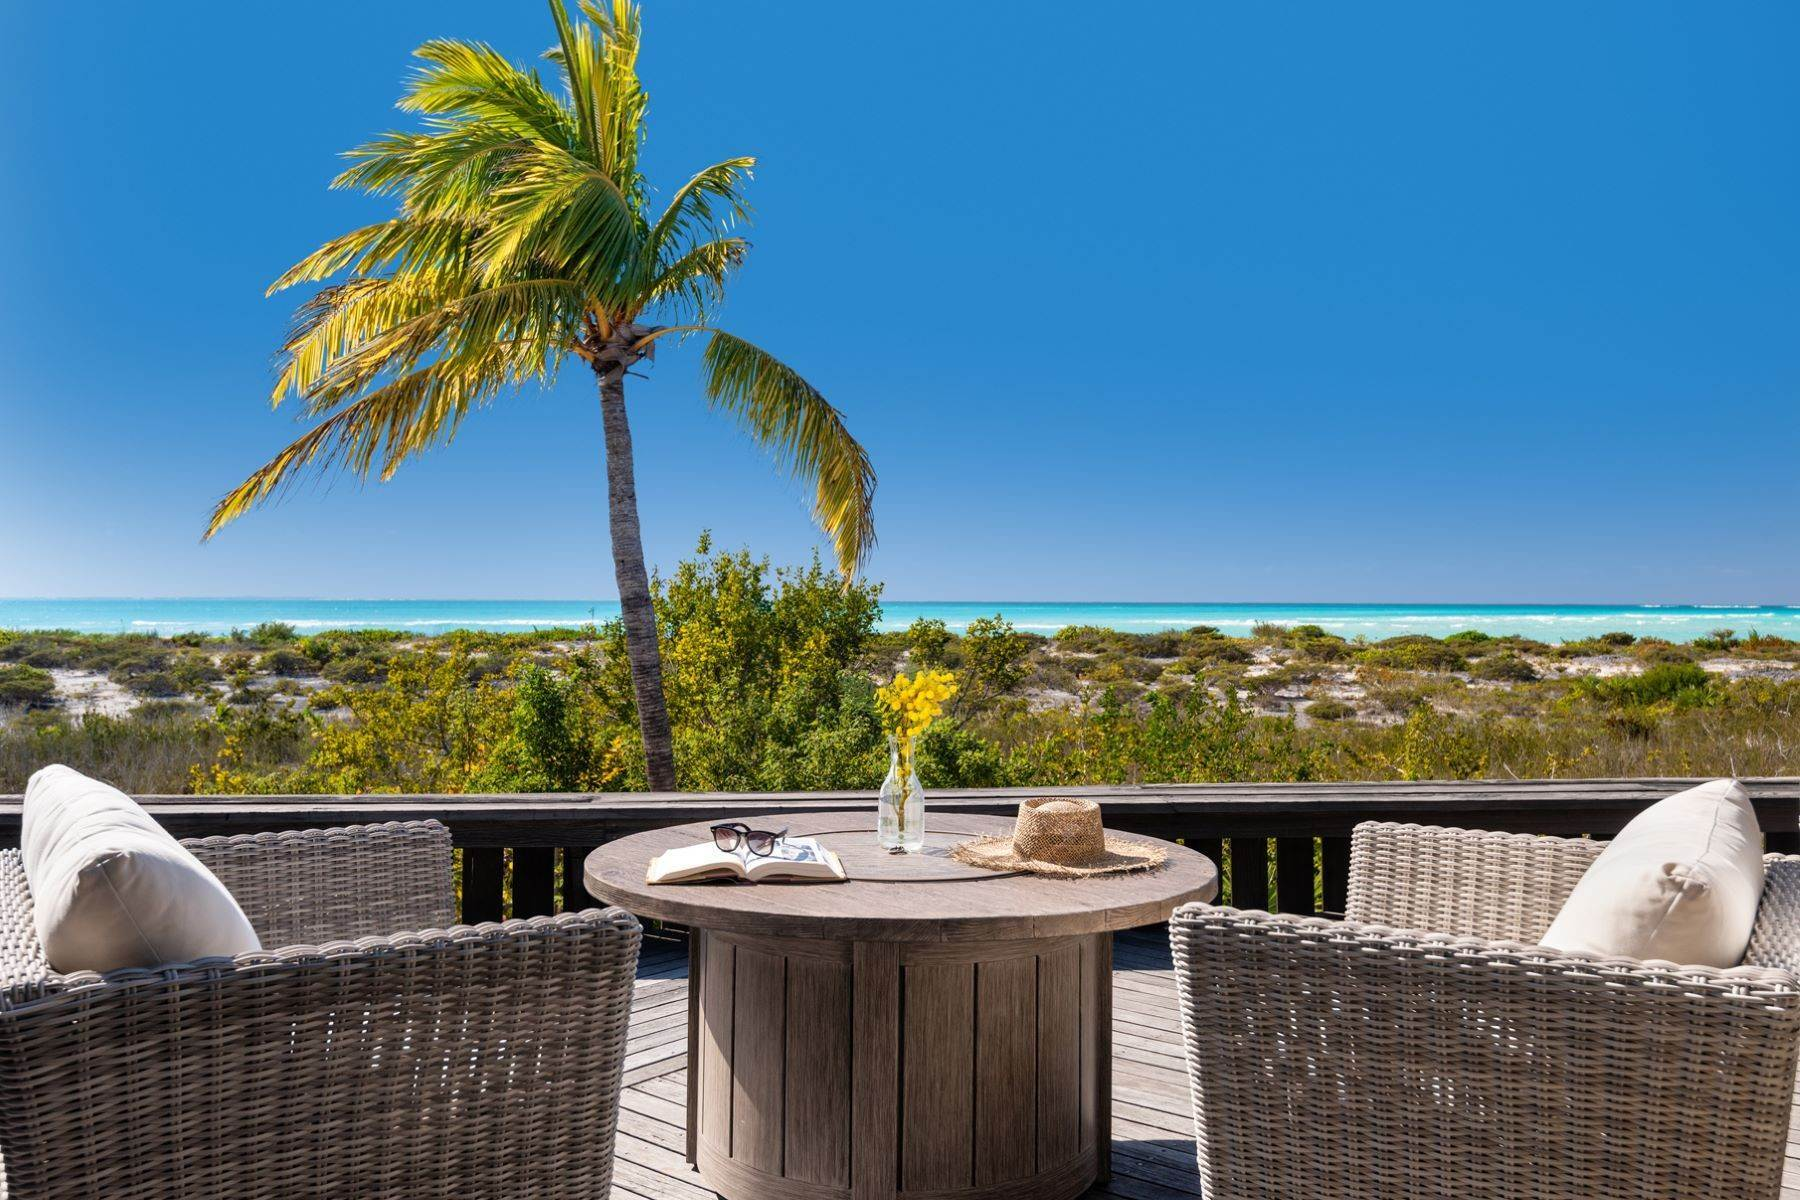 Single Family Homes for Sale at LEMONGRASS Pine Cay, Pine Cay Turks And Caicos Islands